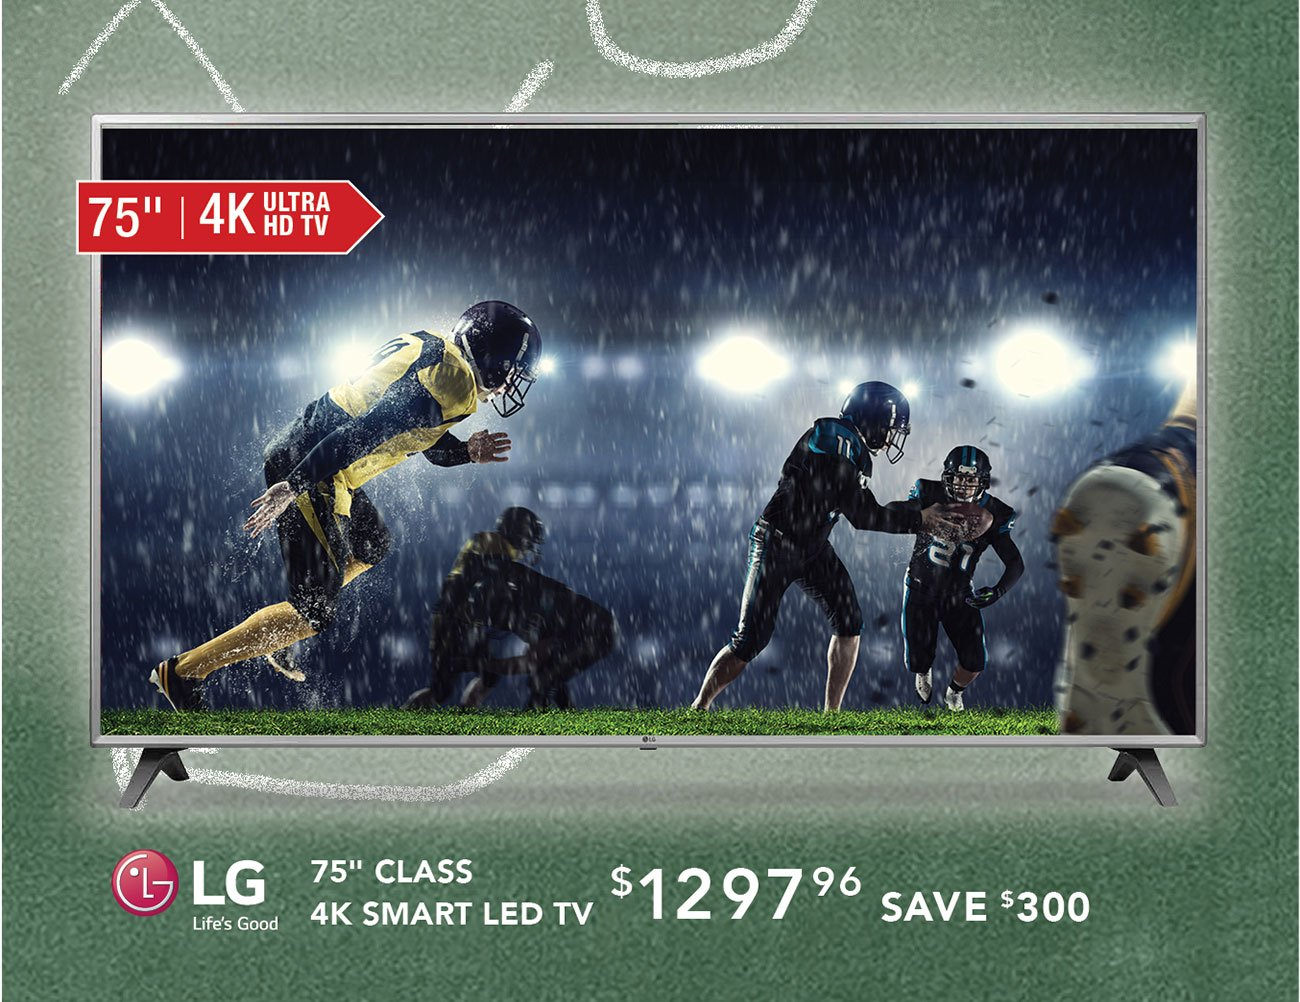 LG-4k-smart-led-tv